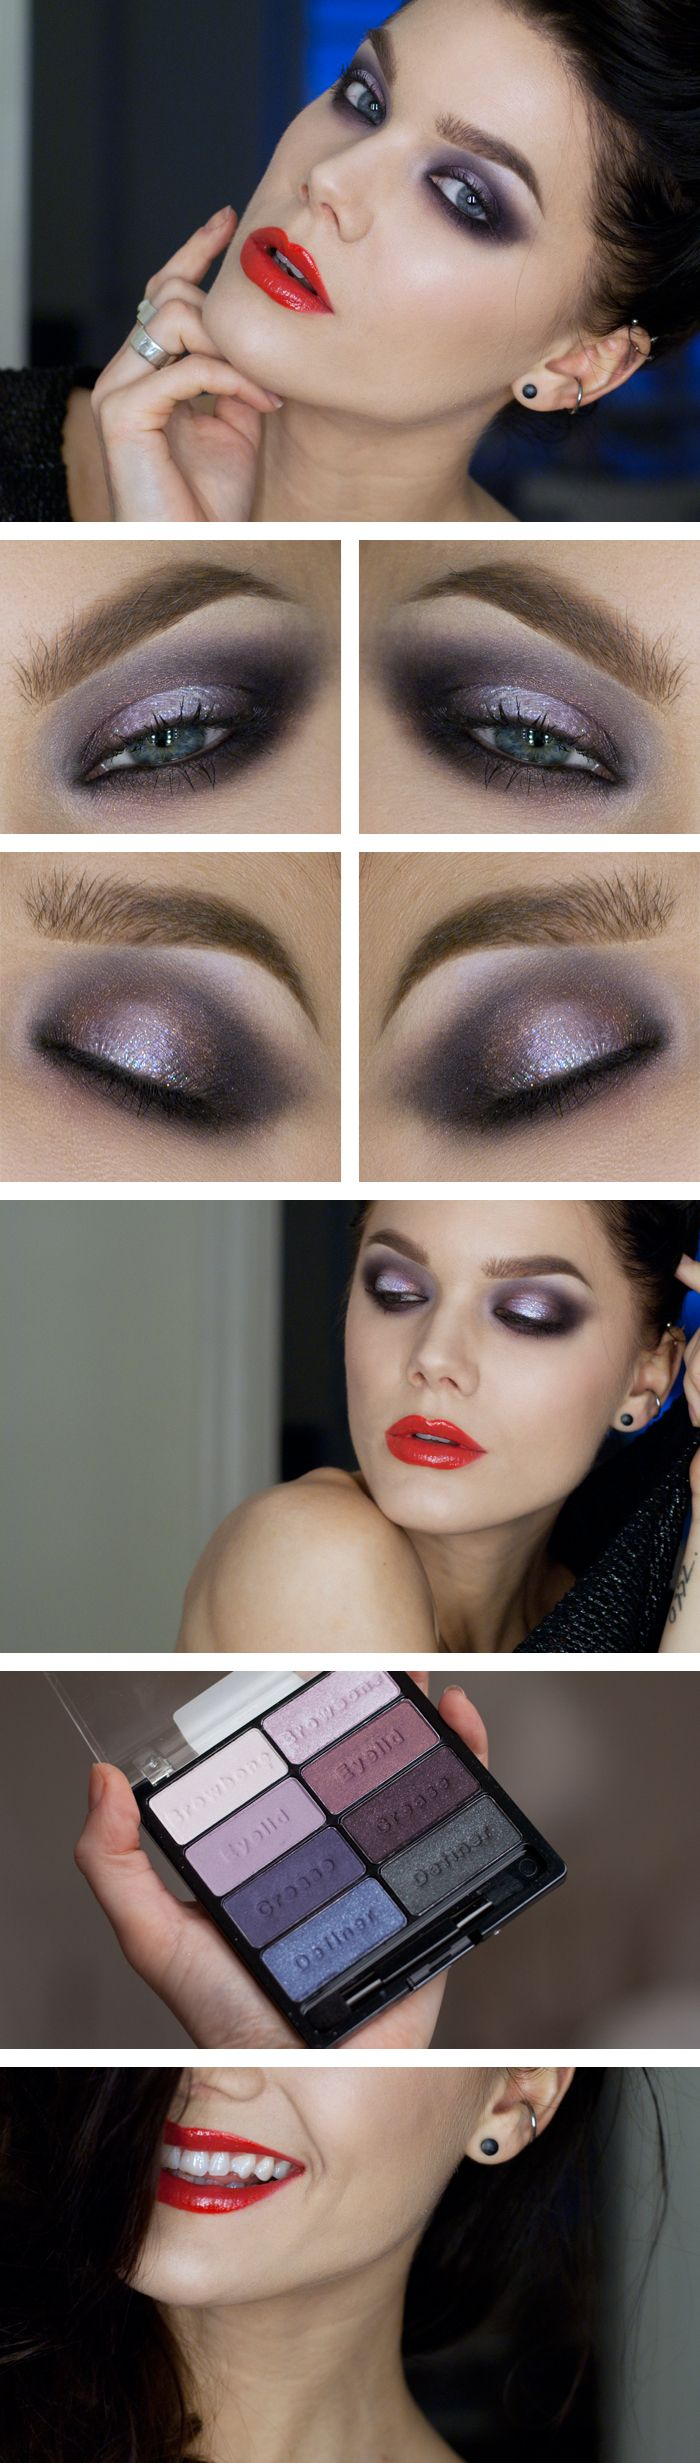 "Today's Look : ""Diamond"" -Linda Hallberg (SWet n Wild's 8 pan eyeshadow palette in Petal Pusher. Dark violet smokey eye paired with a bold red lip.) 11/08/13"